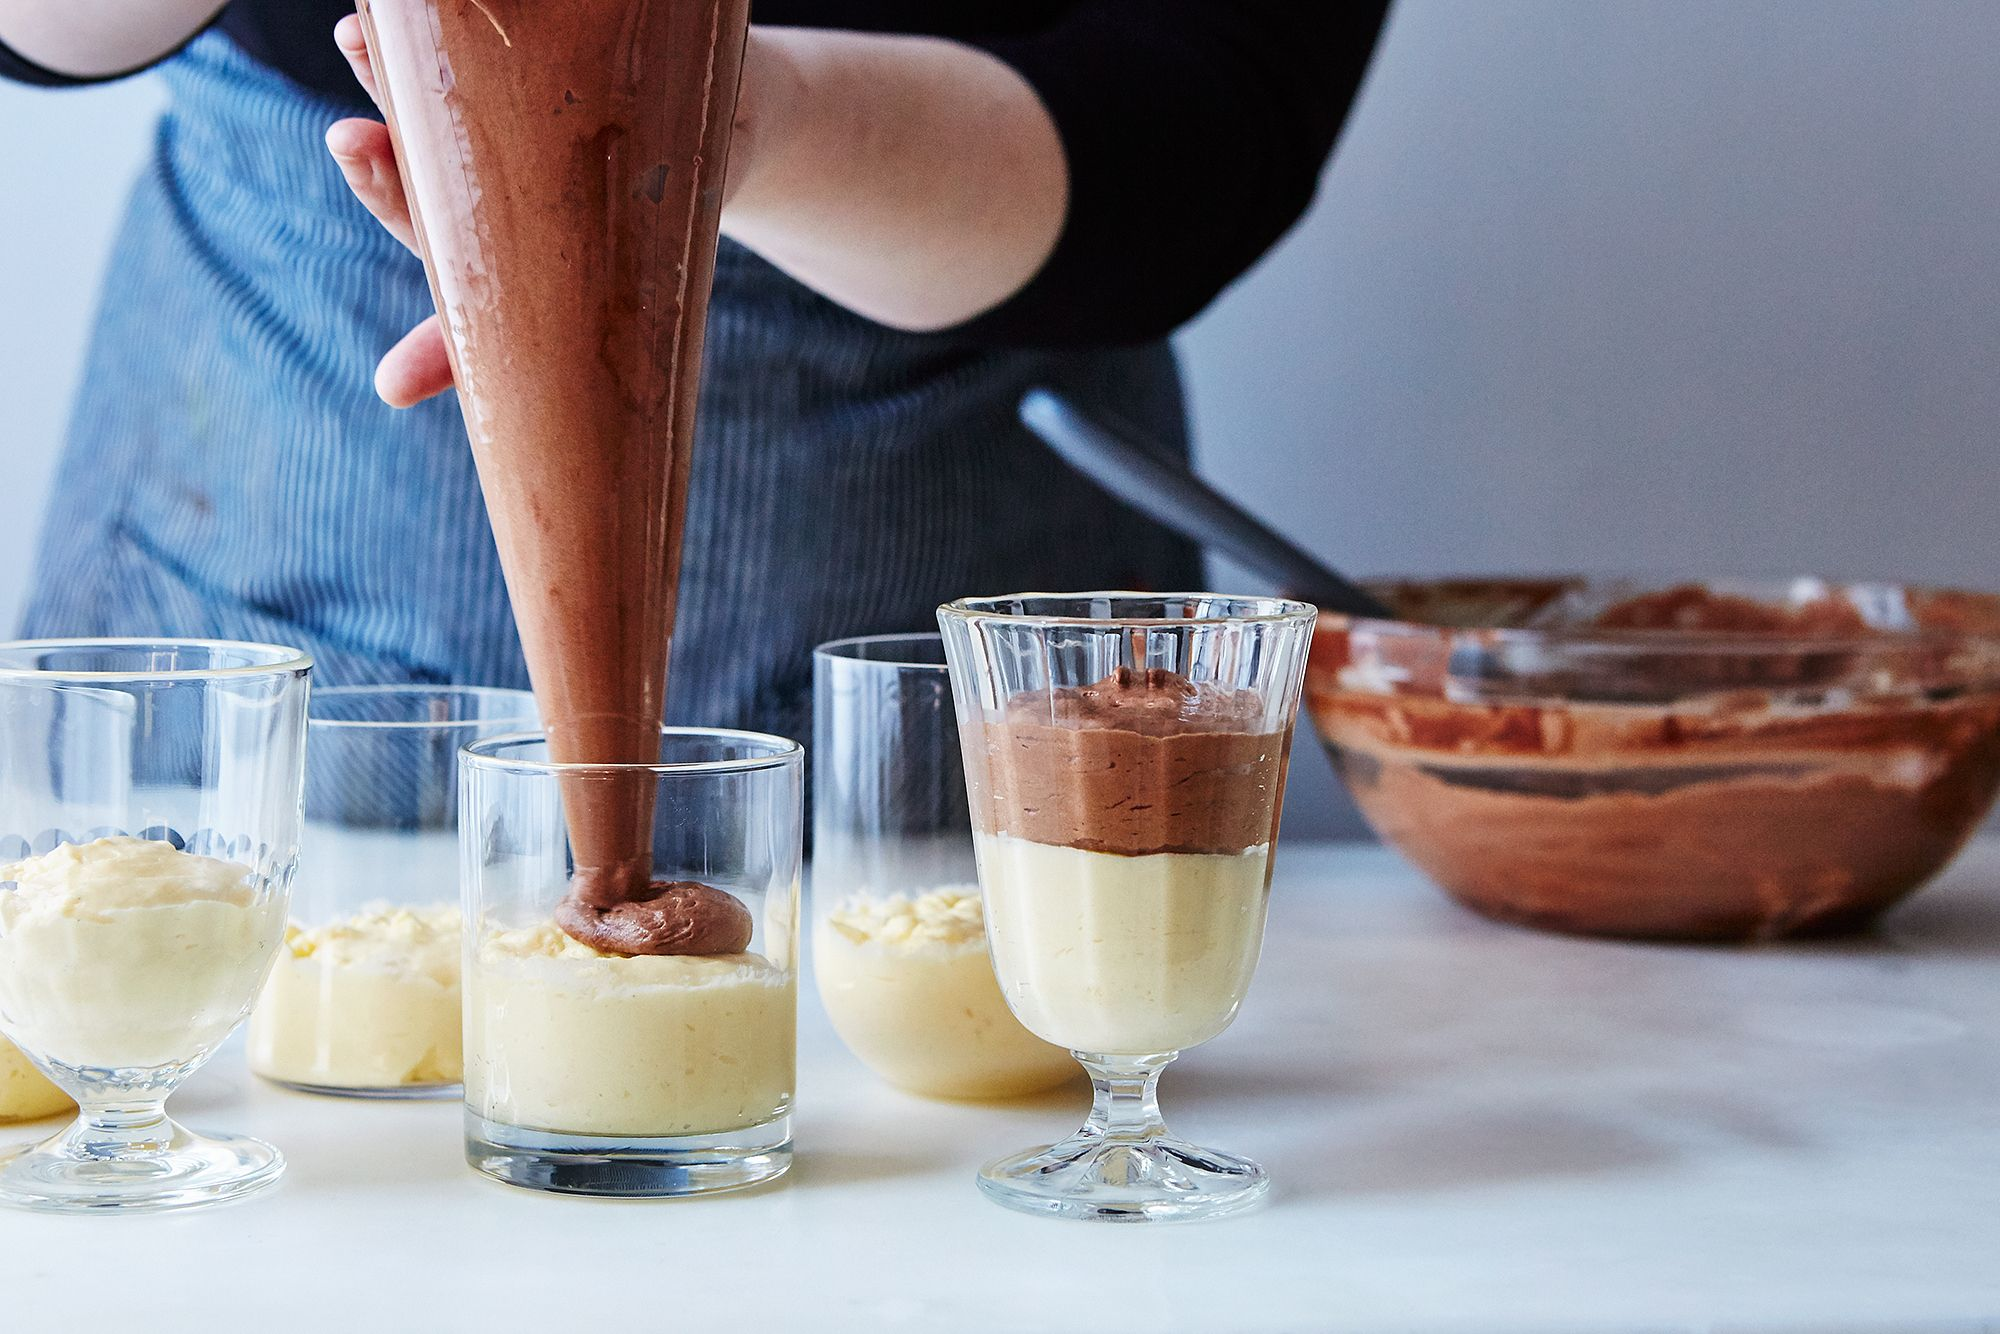 How to Make Mousse, According to an Expert